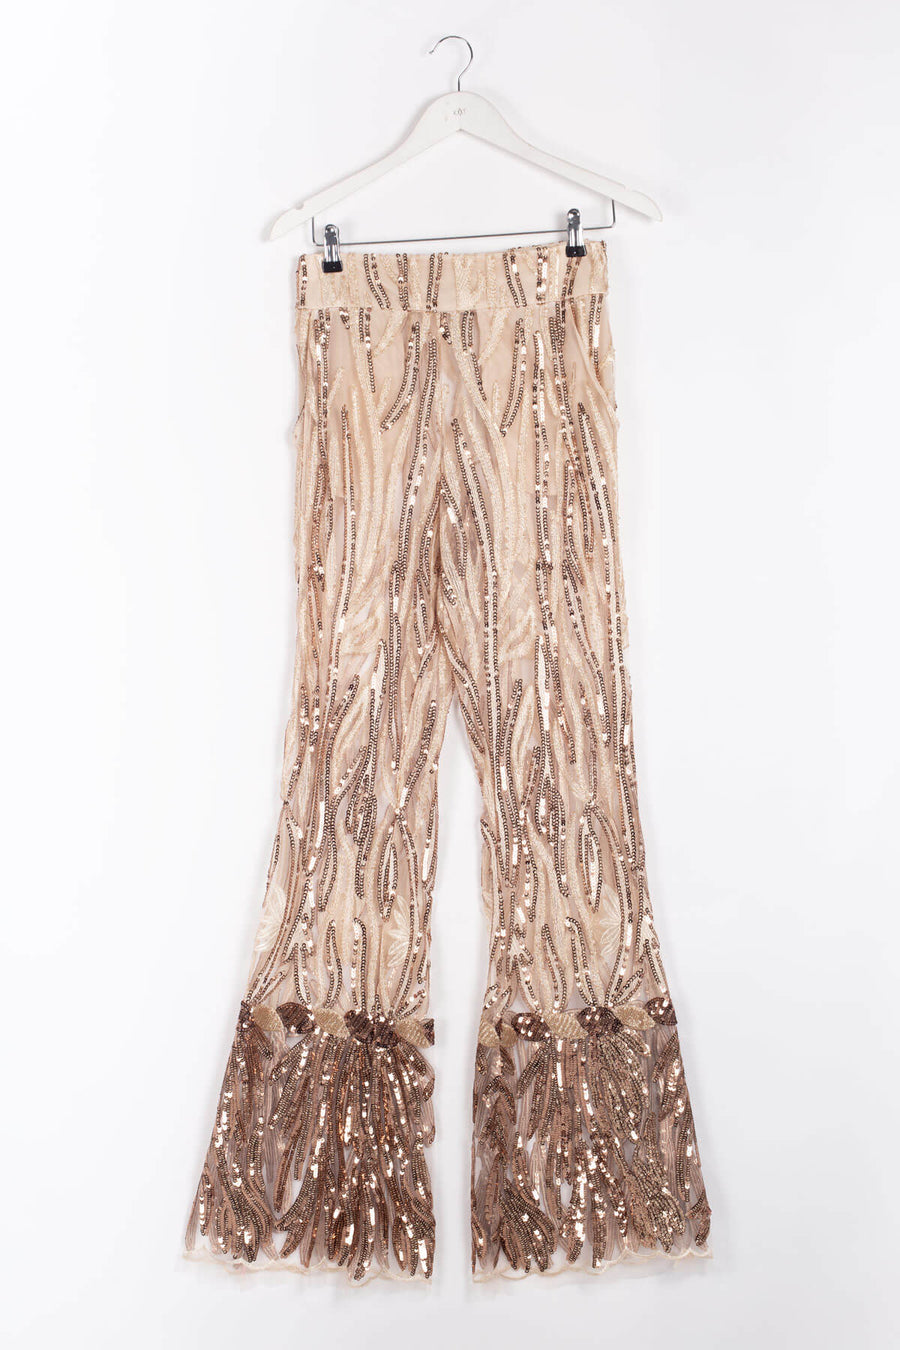 Flared See-through Highwaisted Sequin Pants - Copper